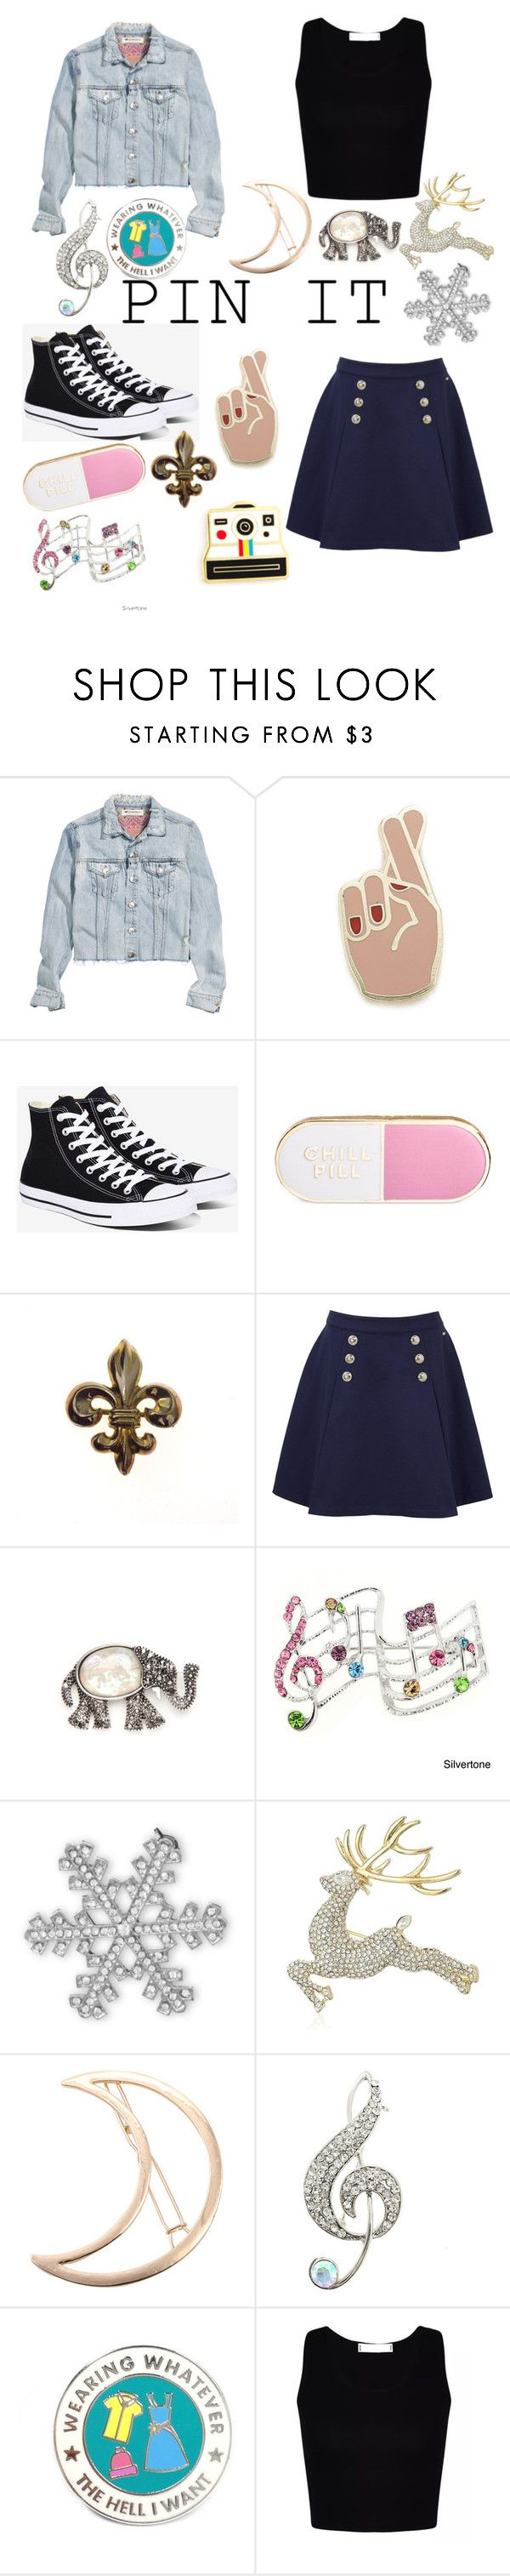 """Pin It"" by brooklyn-bowden ❤ liked on Polyvore featuring H&M, Georgia Perry, Converse, ban.do, Polaroid, Tommy Hilfiger, Kim Rogers, BillyTheTree, Anne Klein and Chicnova Fashion"